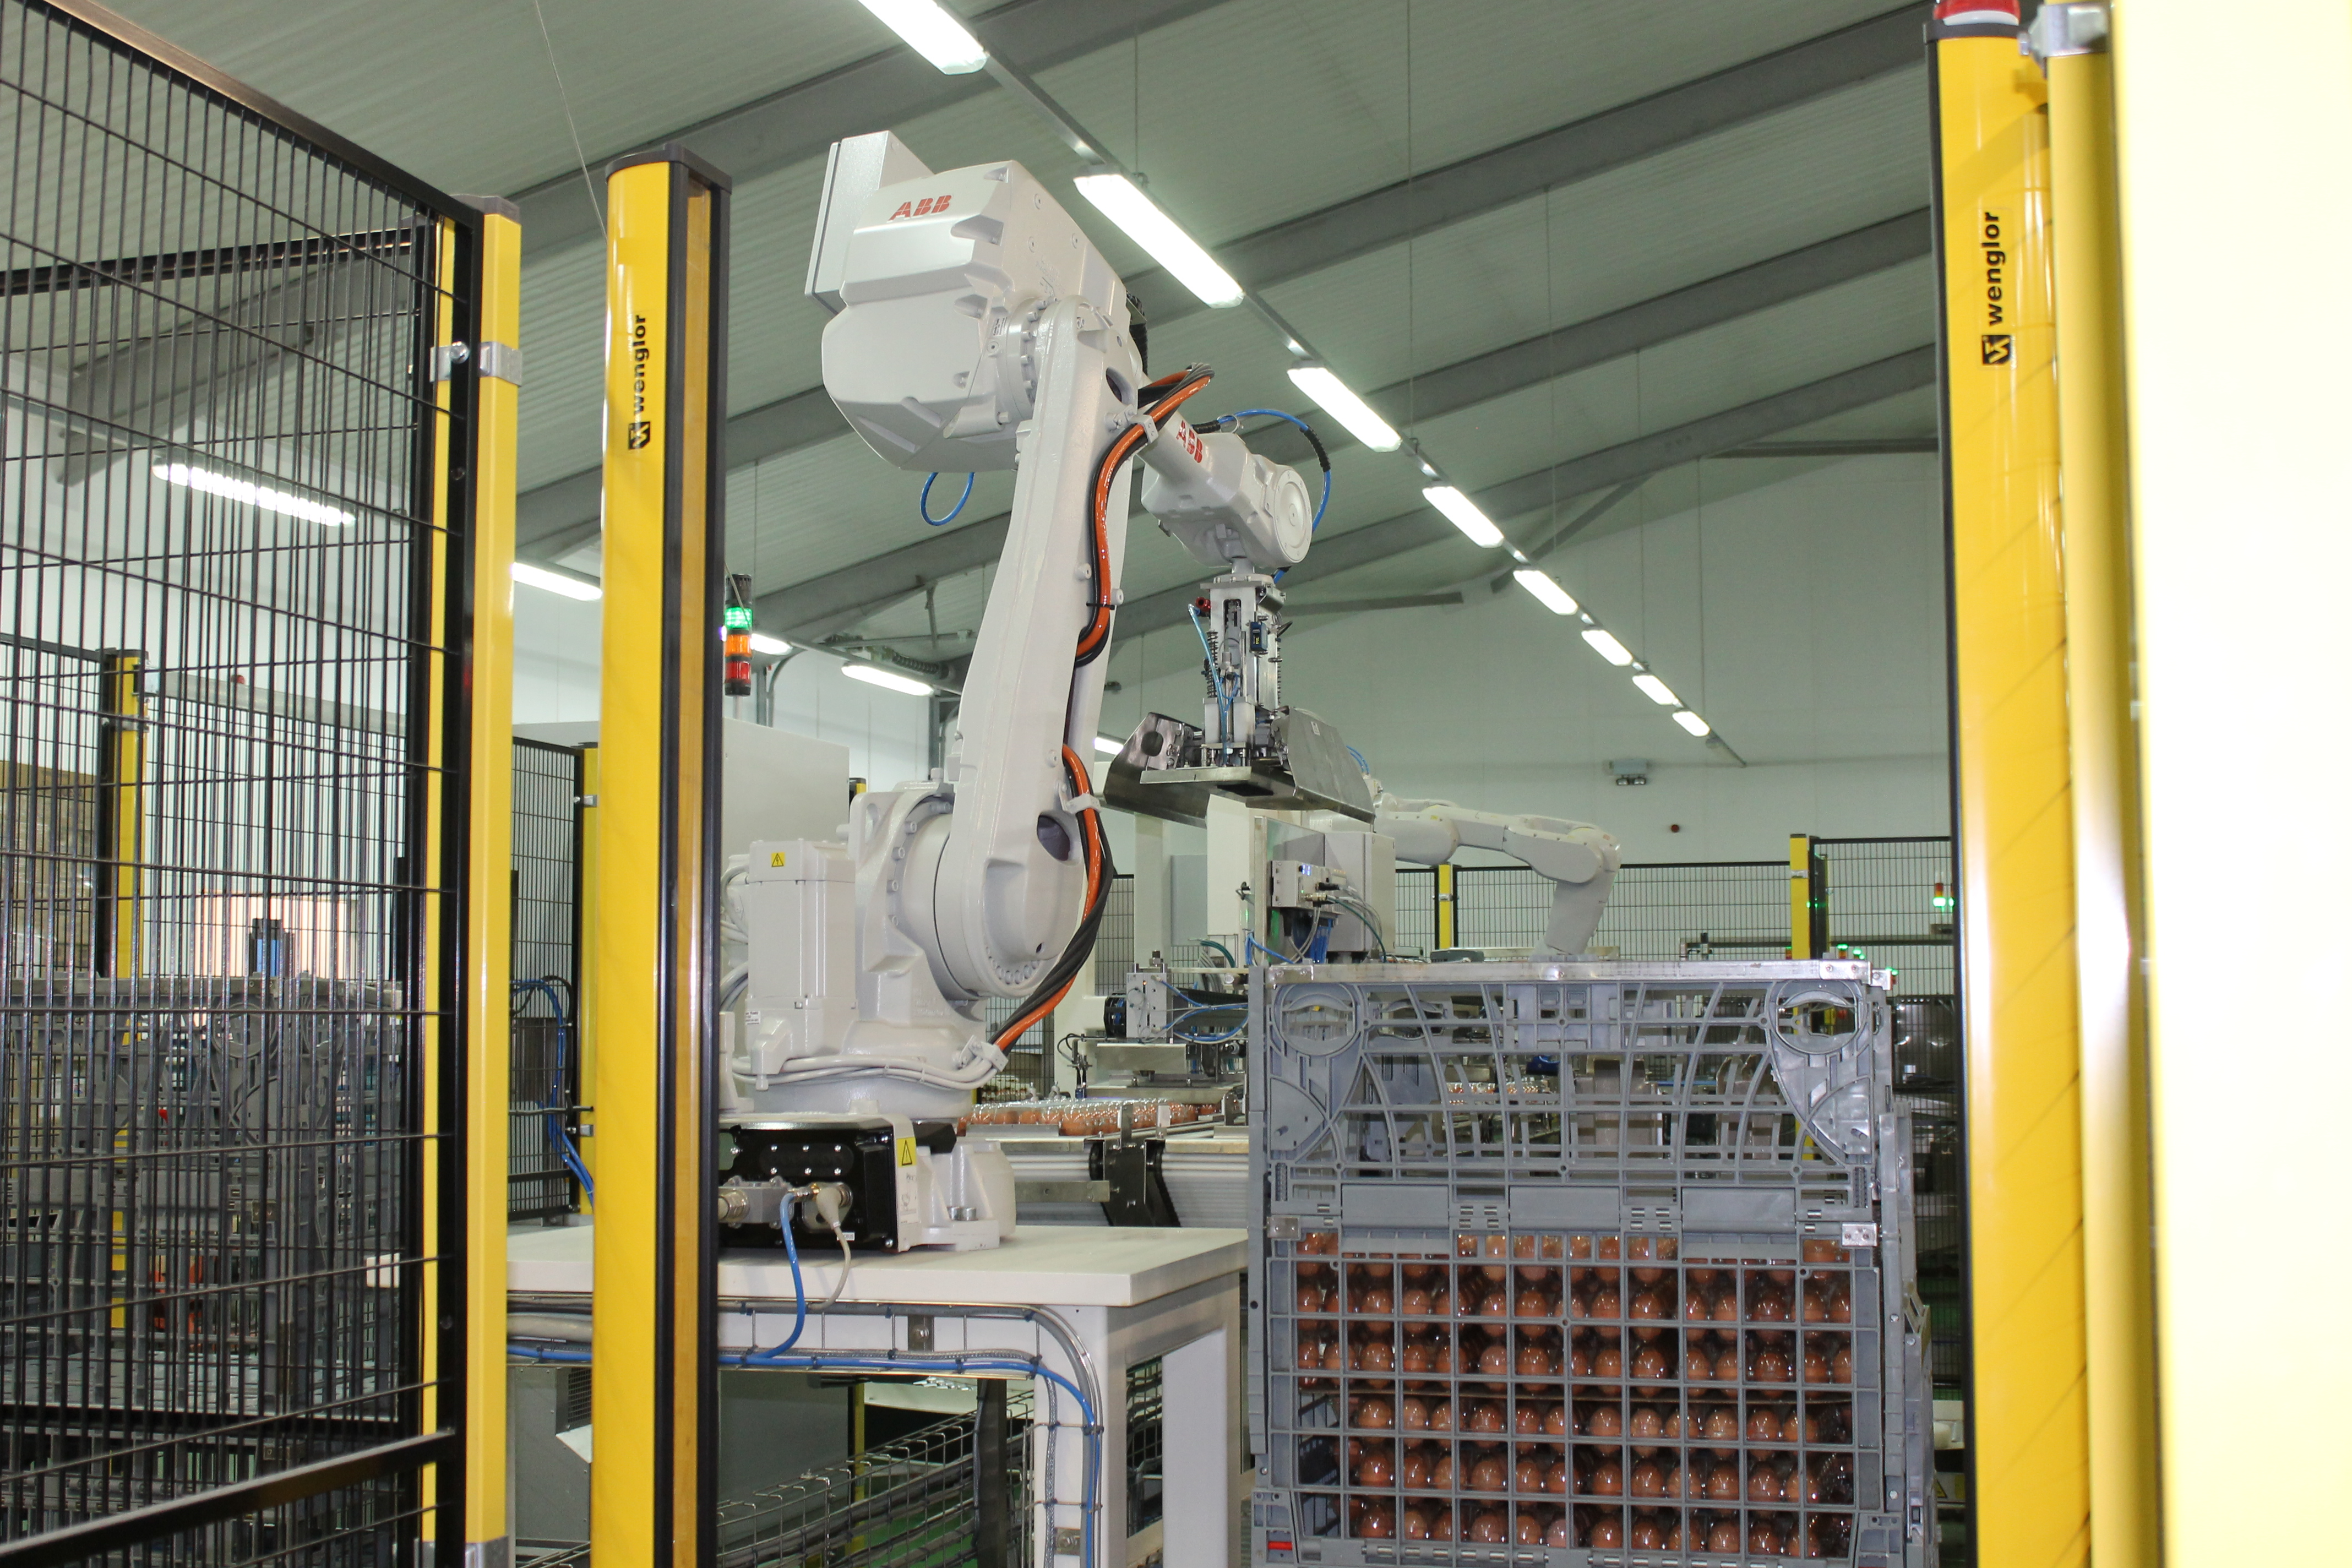 CKF utilises the latest in robot palletising technology to safely pack fresh egg cases